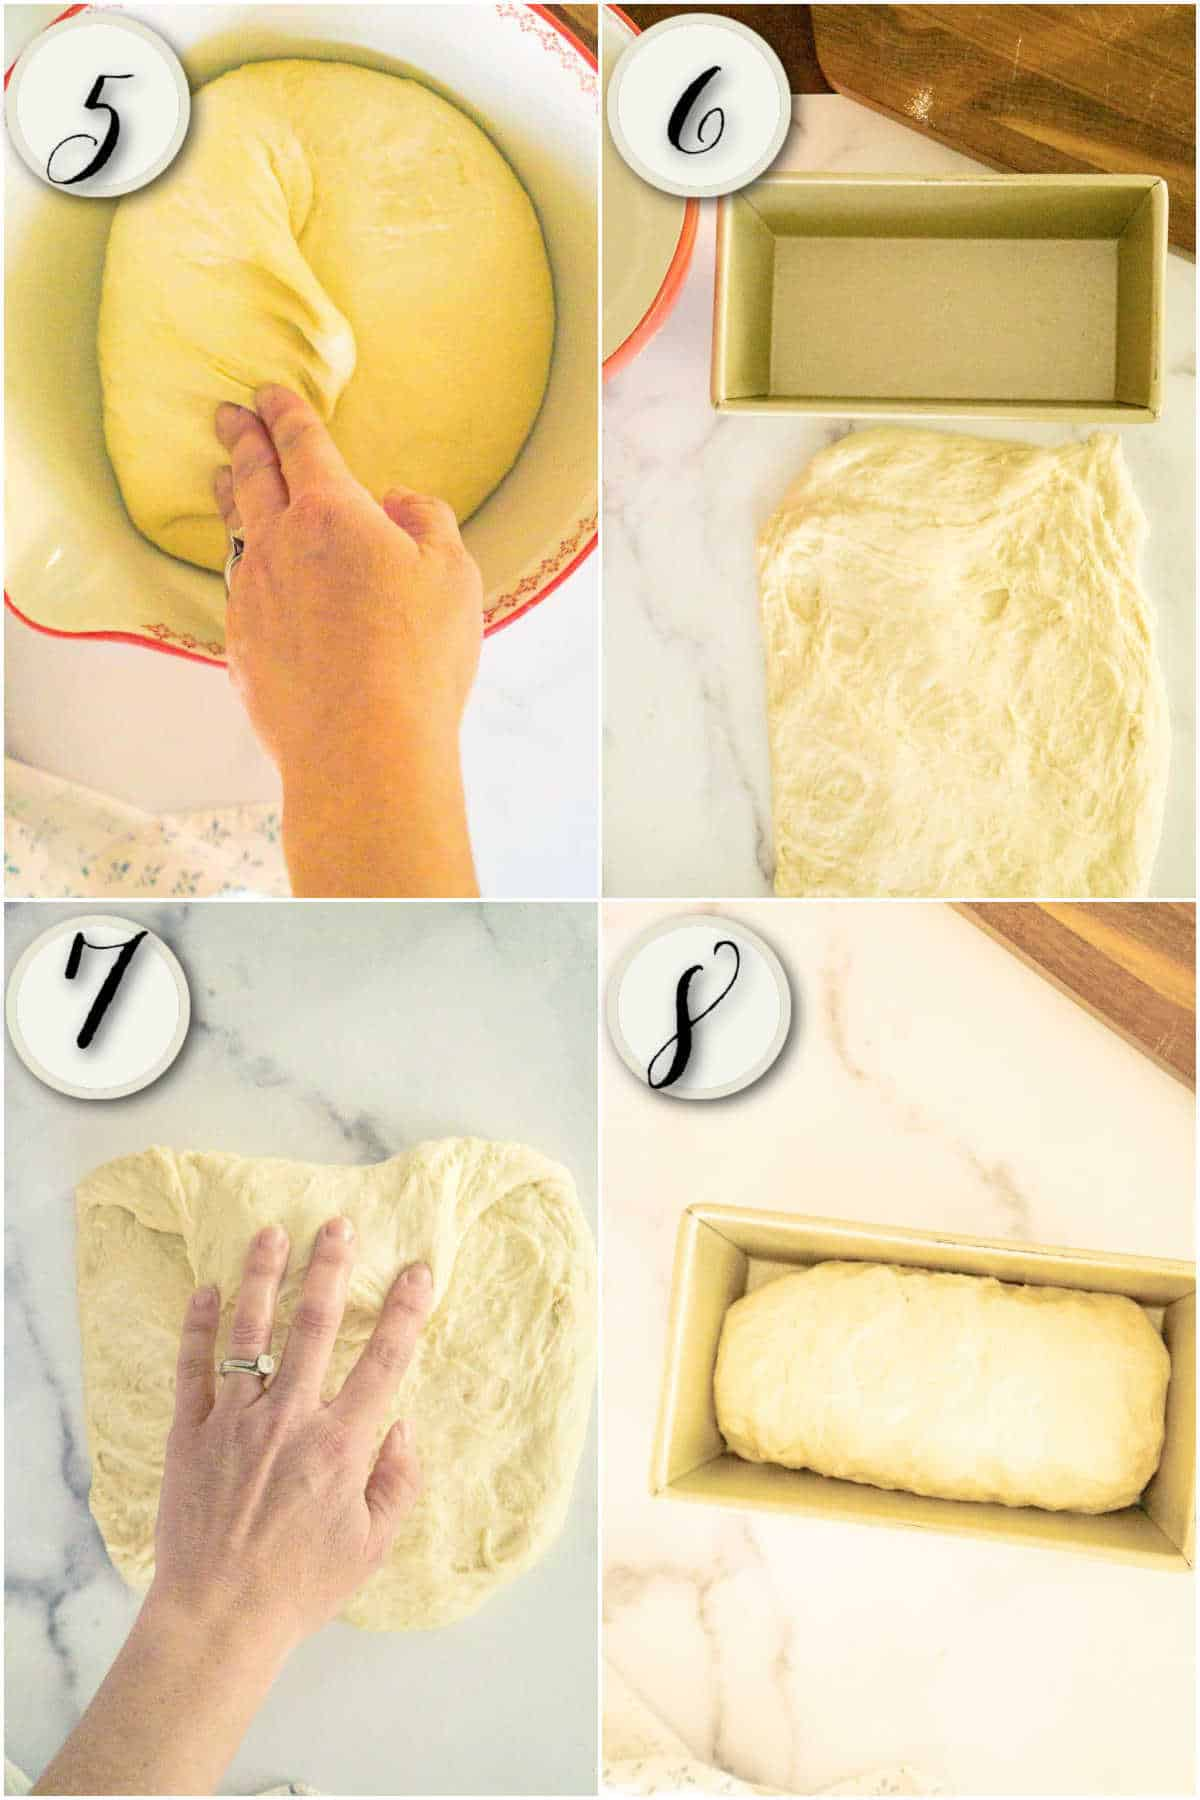 risen dough, shaping into loaf,  placing into loaf pan to rise